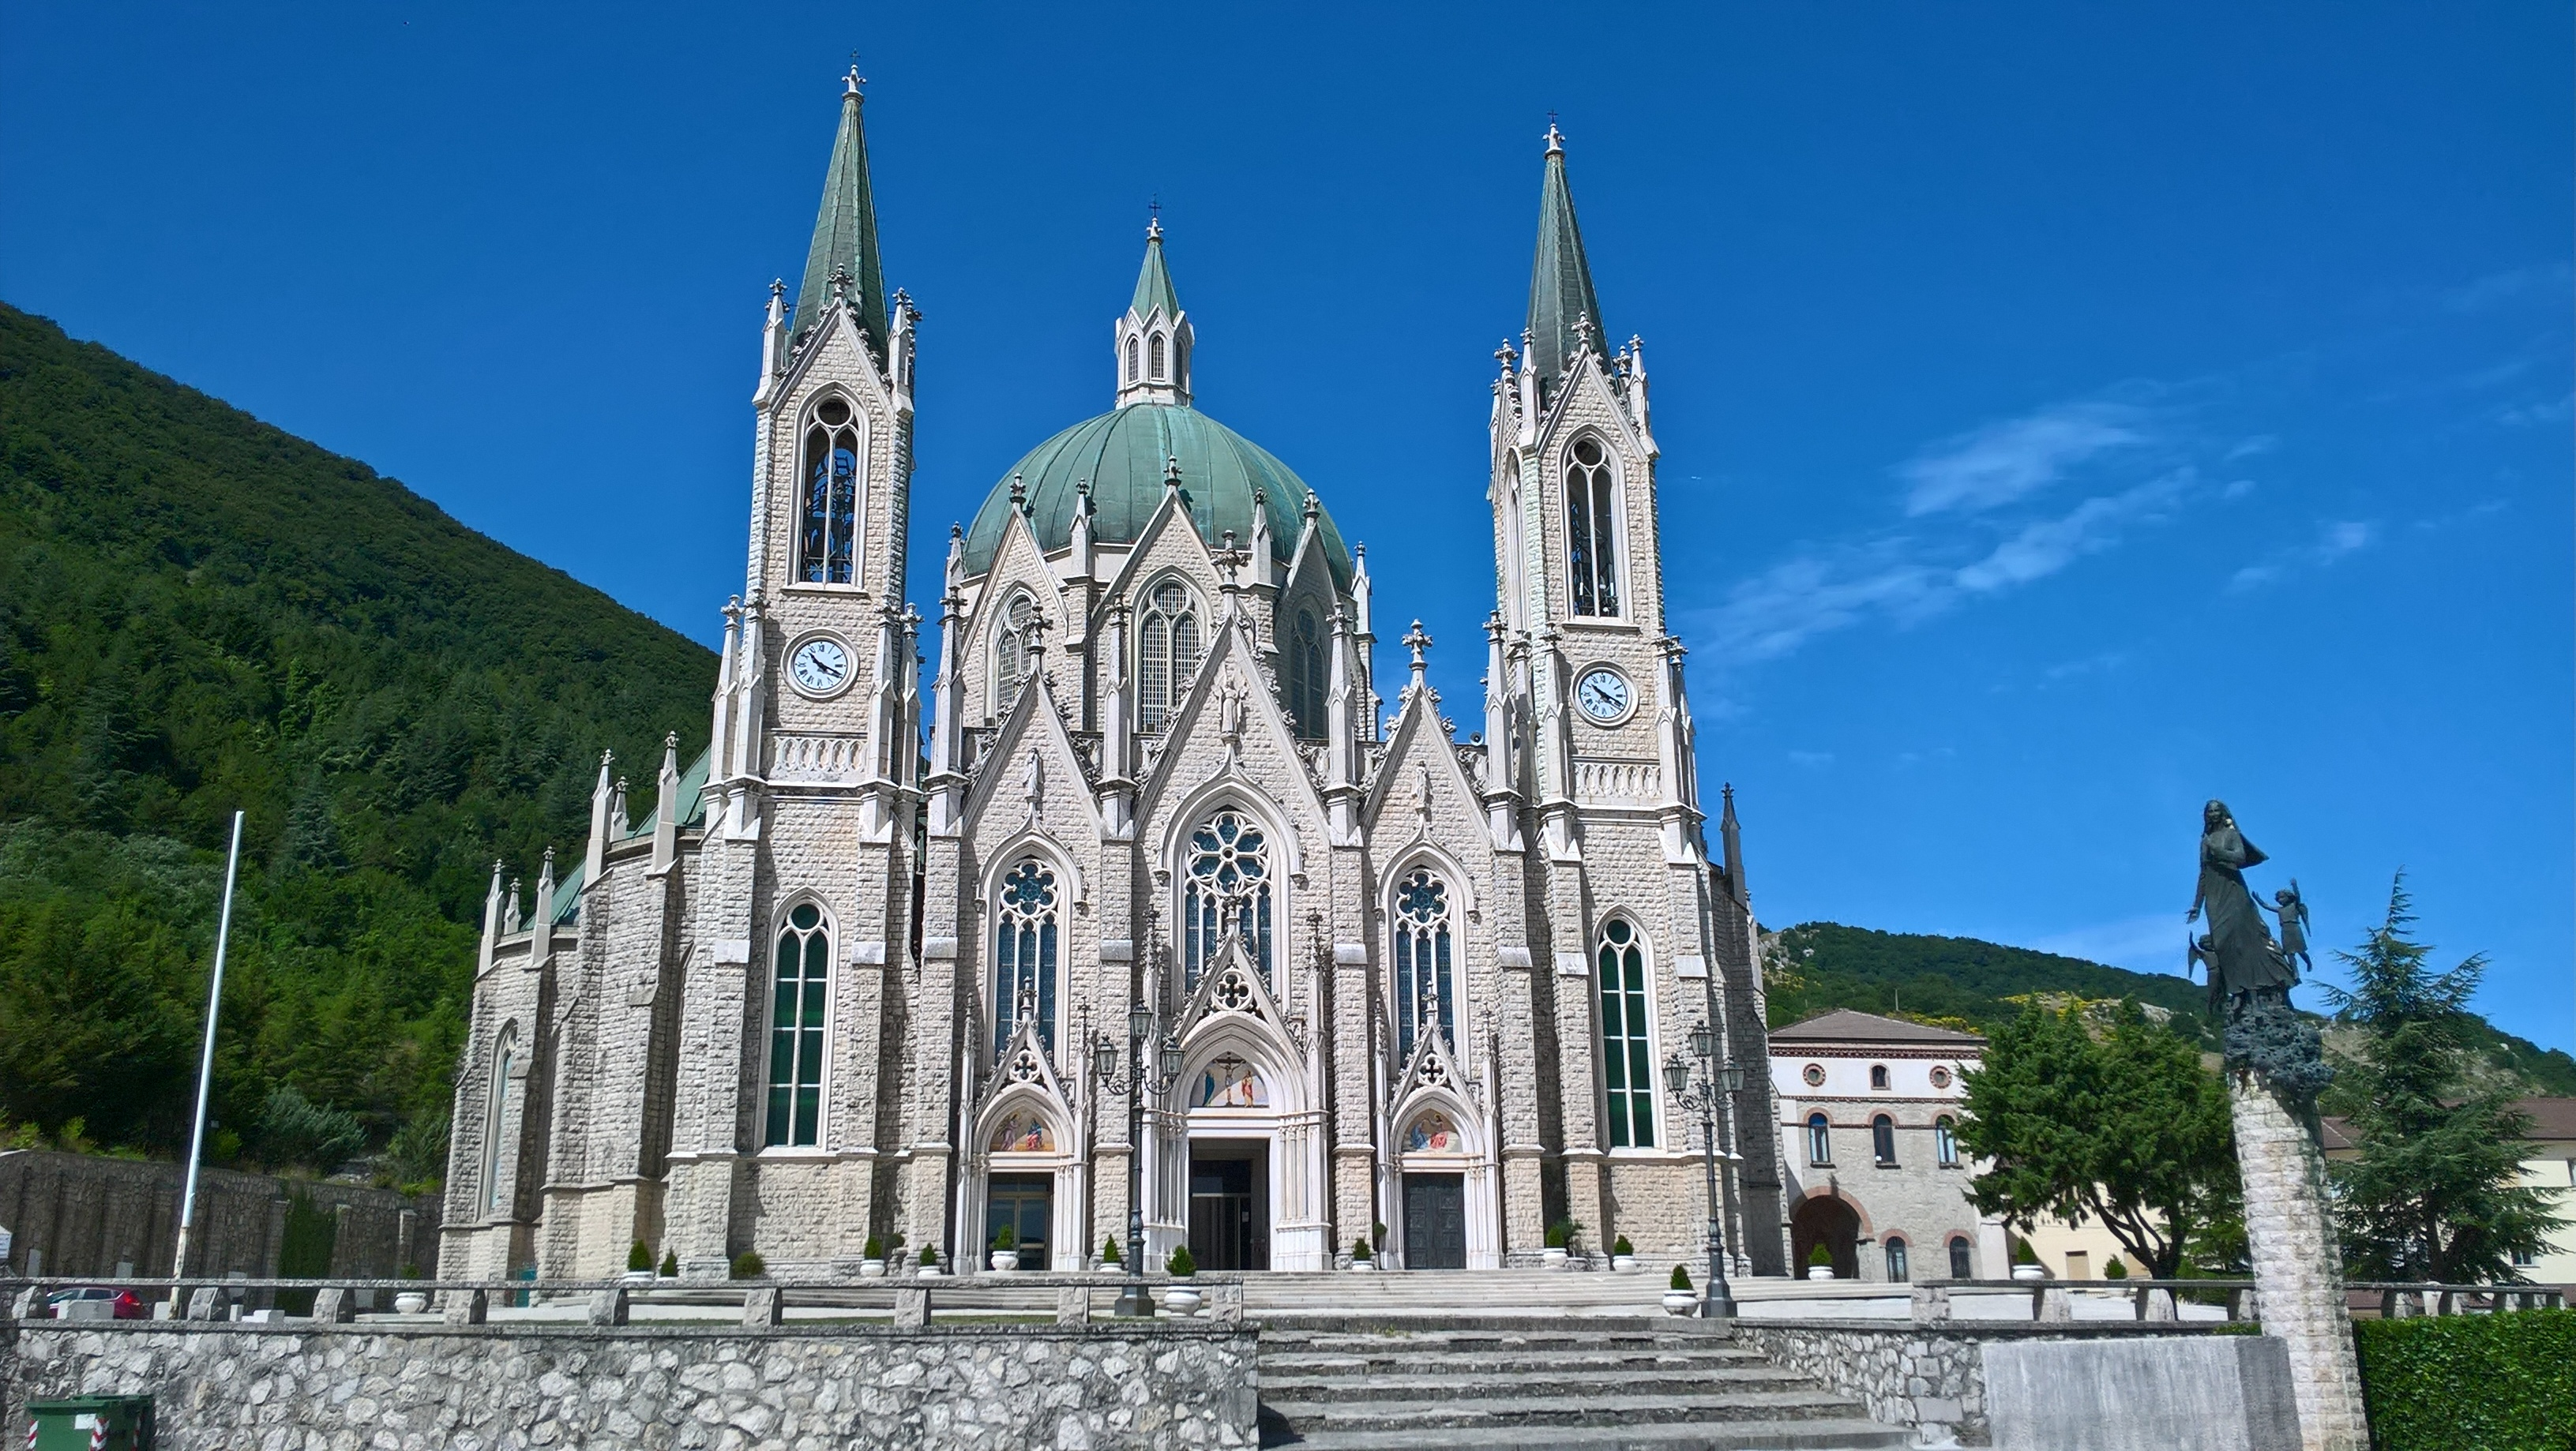 Basilica of Our Lady of Sorrows in Castelpetroso